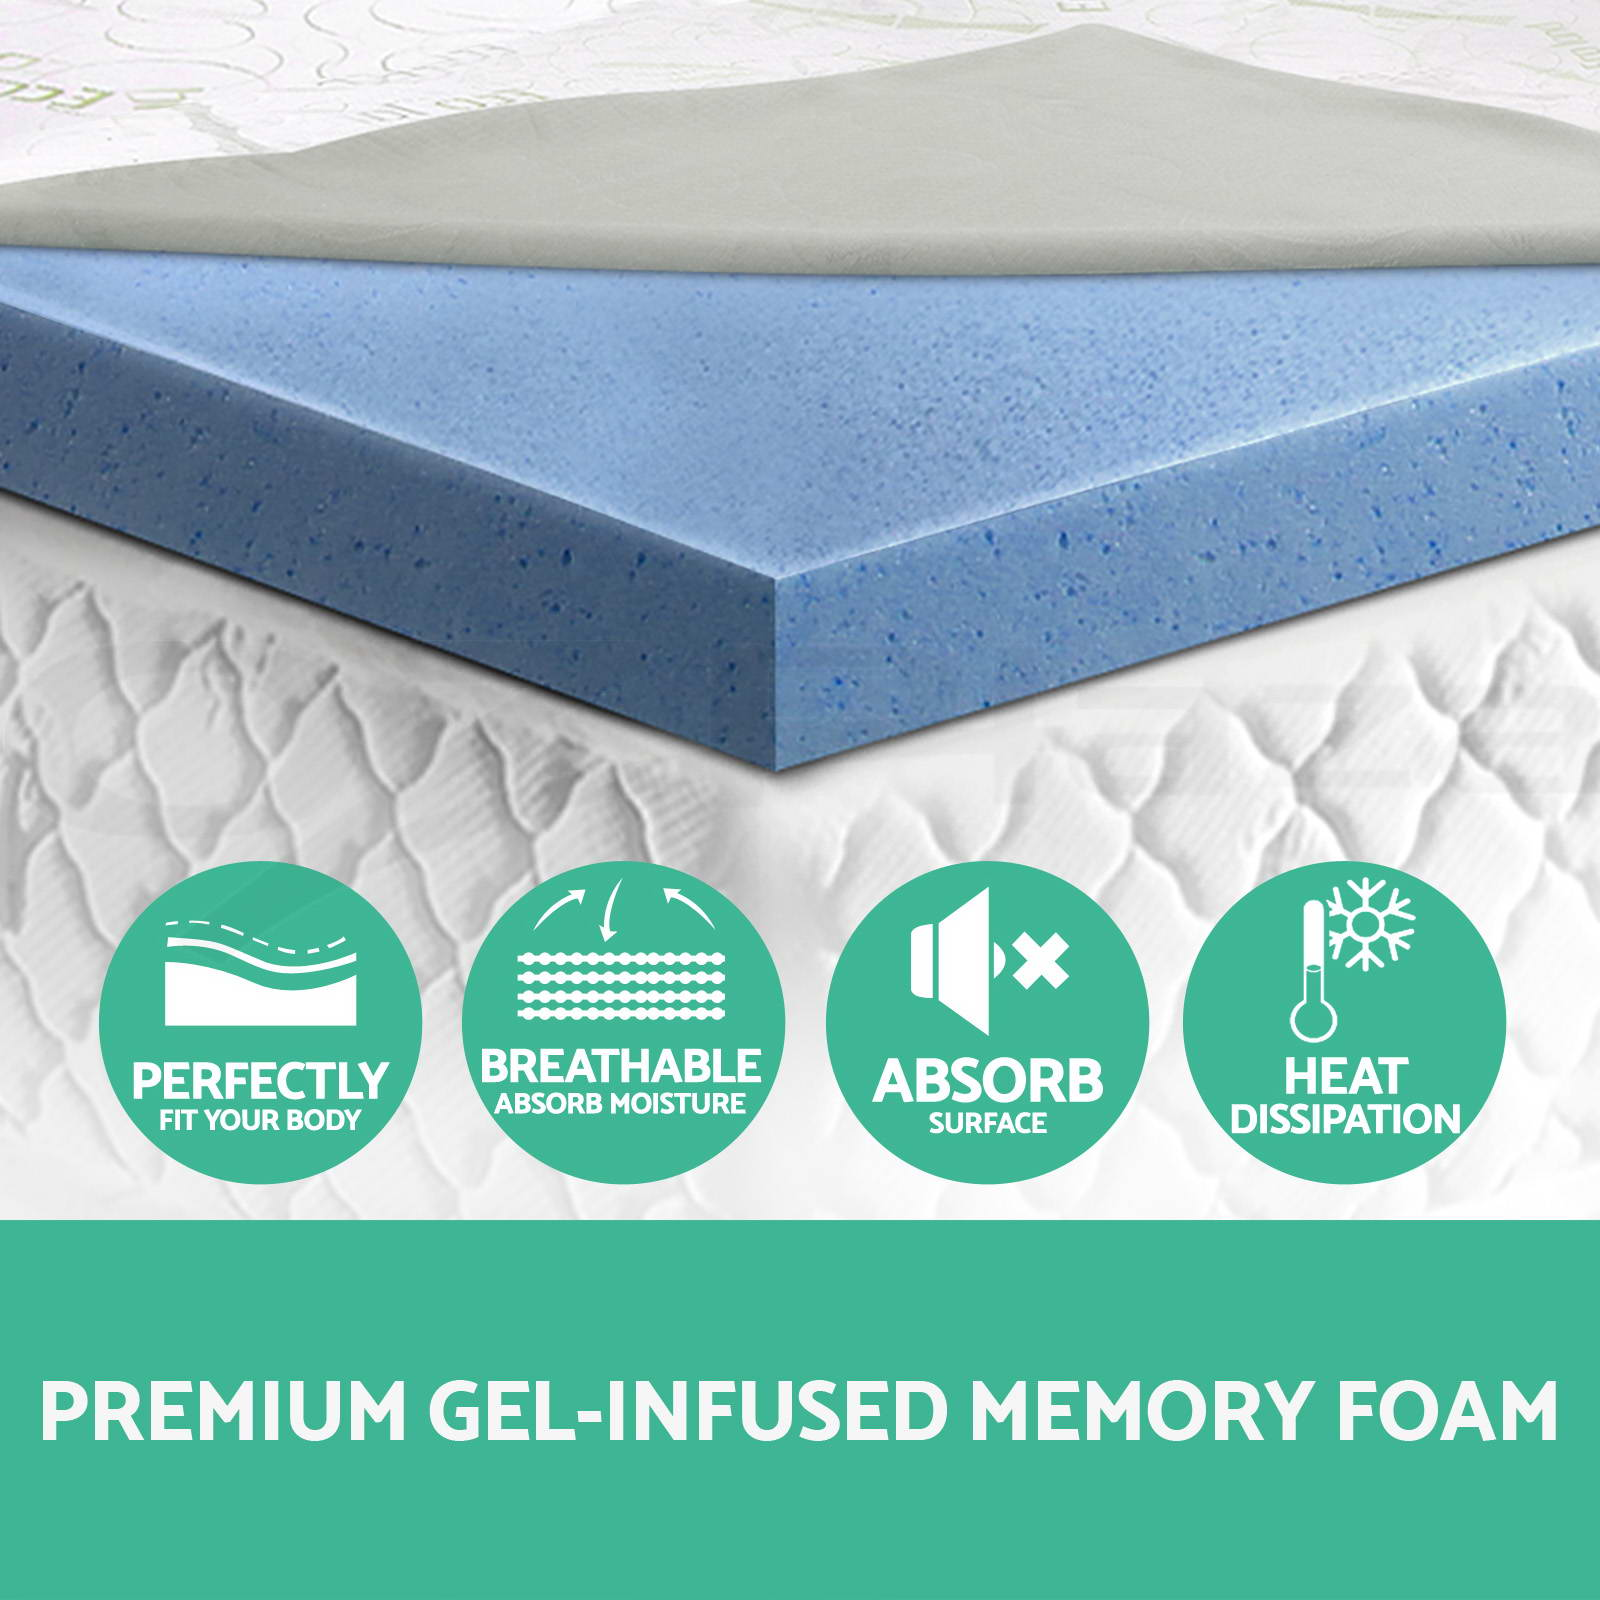 COOL-GEL-Memory-Foam-Mattress-Topper-BAMBOO-Fabric-